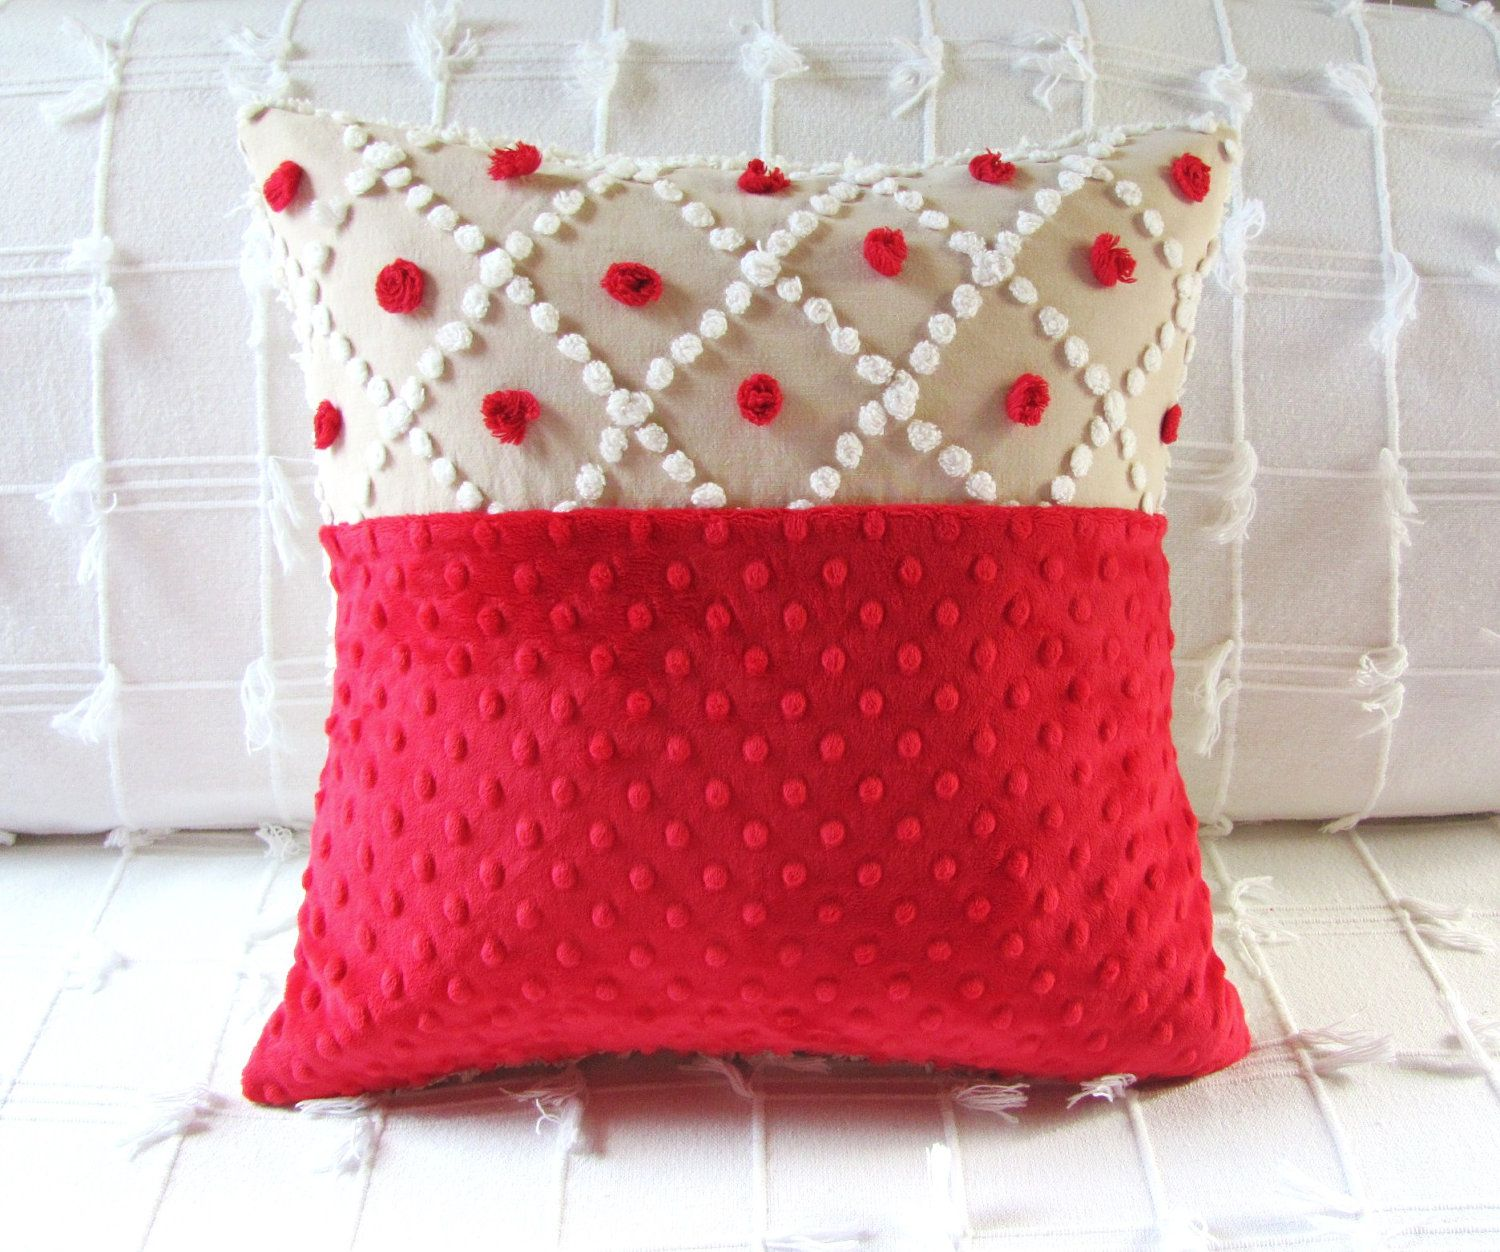 Christmas decorating ideas 10 pretty holiday pillows Pillow design ideas